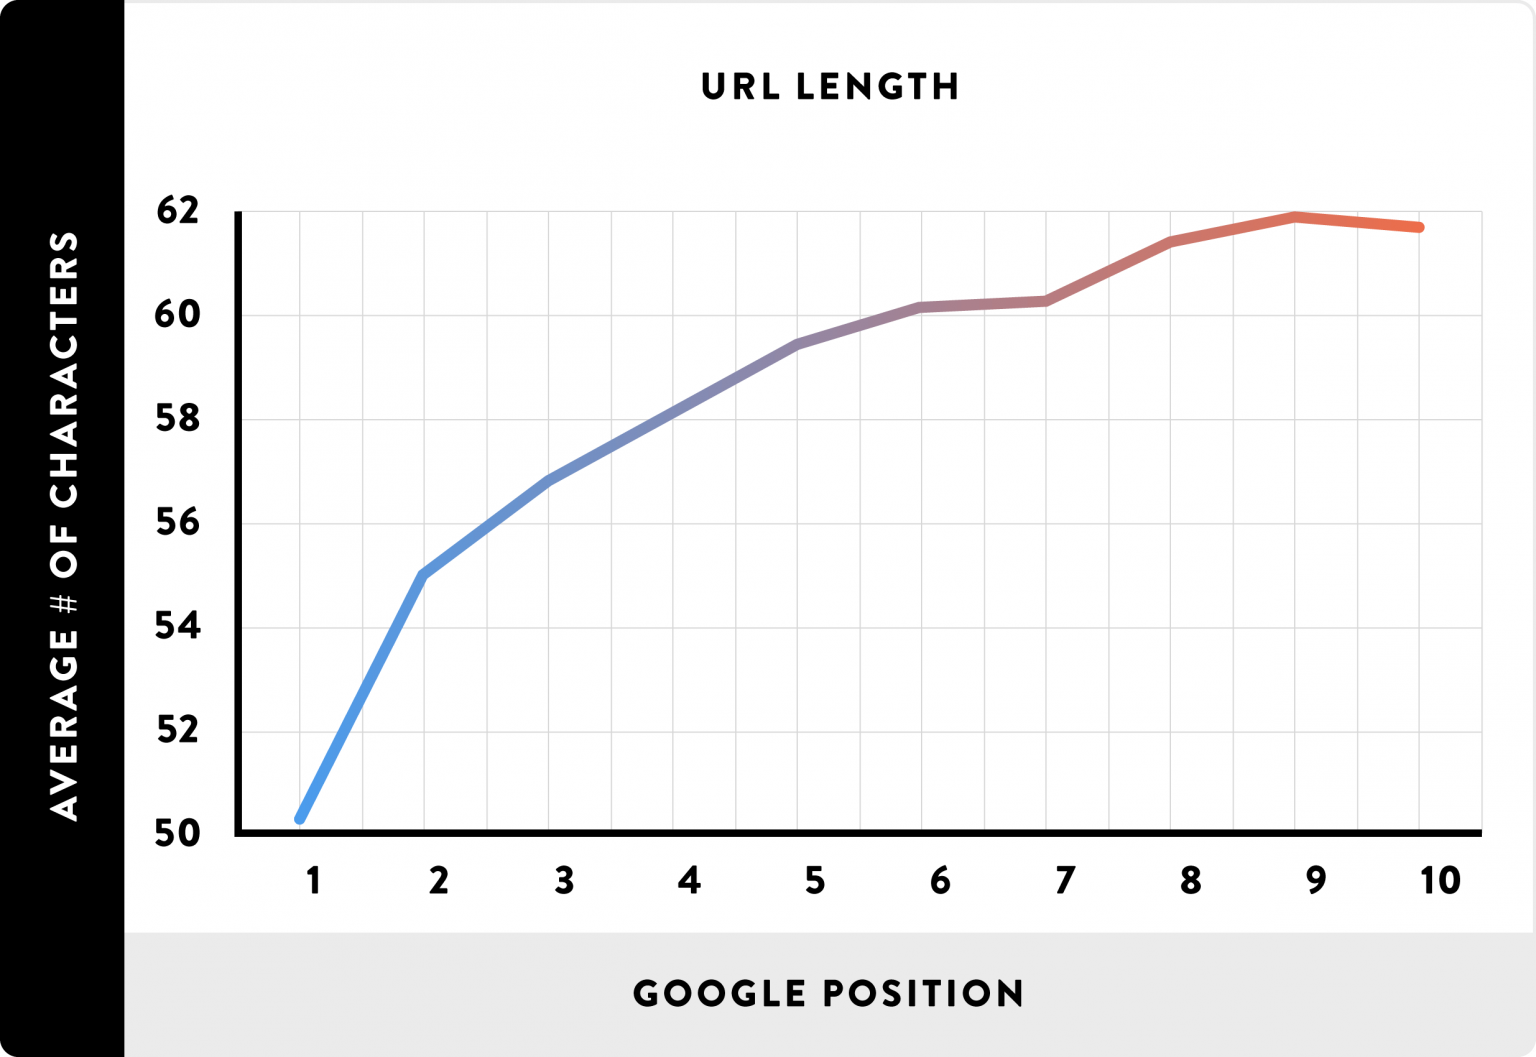 Shorter Urls And Higher Google Rankings Are Strongly Correlated 1536x1057 2